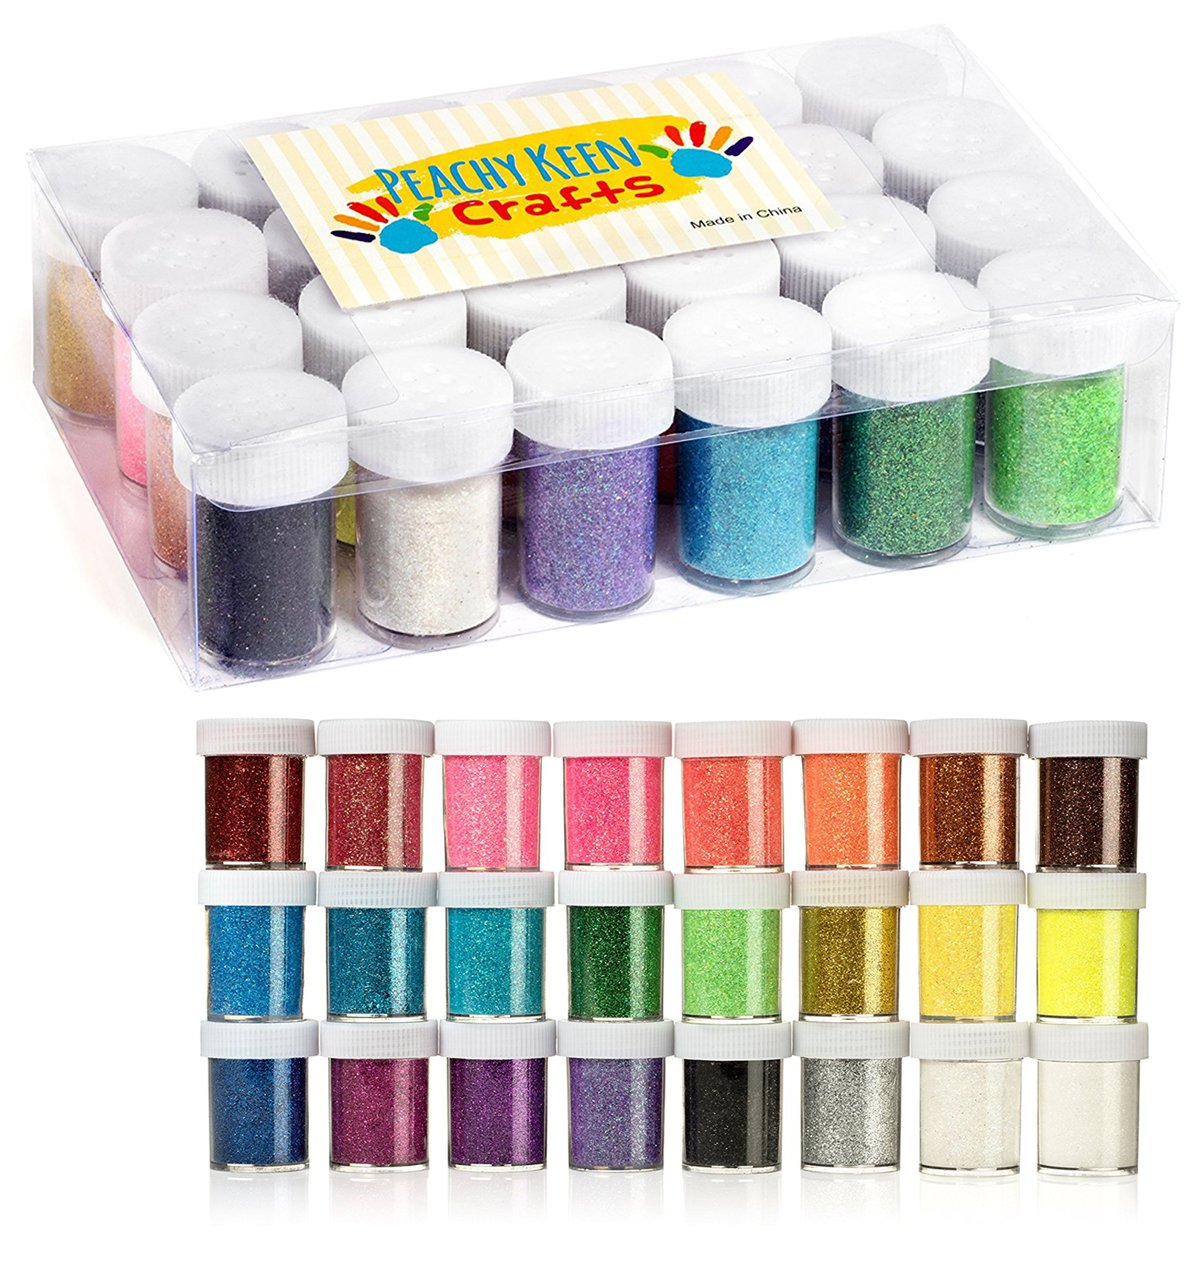 24 Pack Glitter Powder - Brightly Colored Loose Dust - Kids Fine Glitter Pack Shake Jars Perfect for Slime